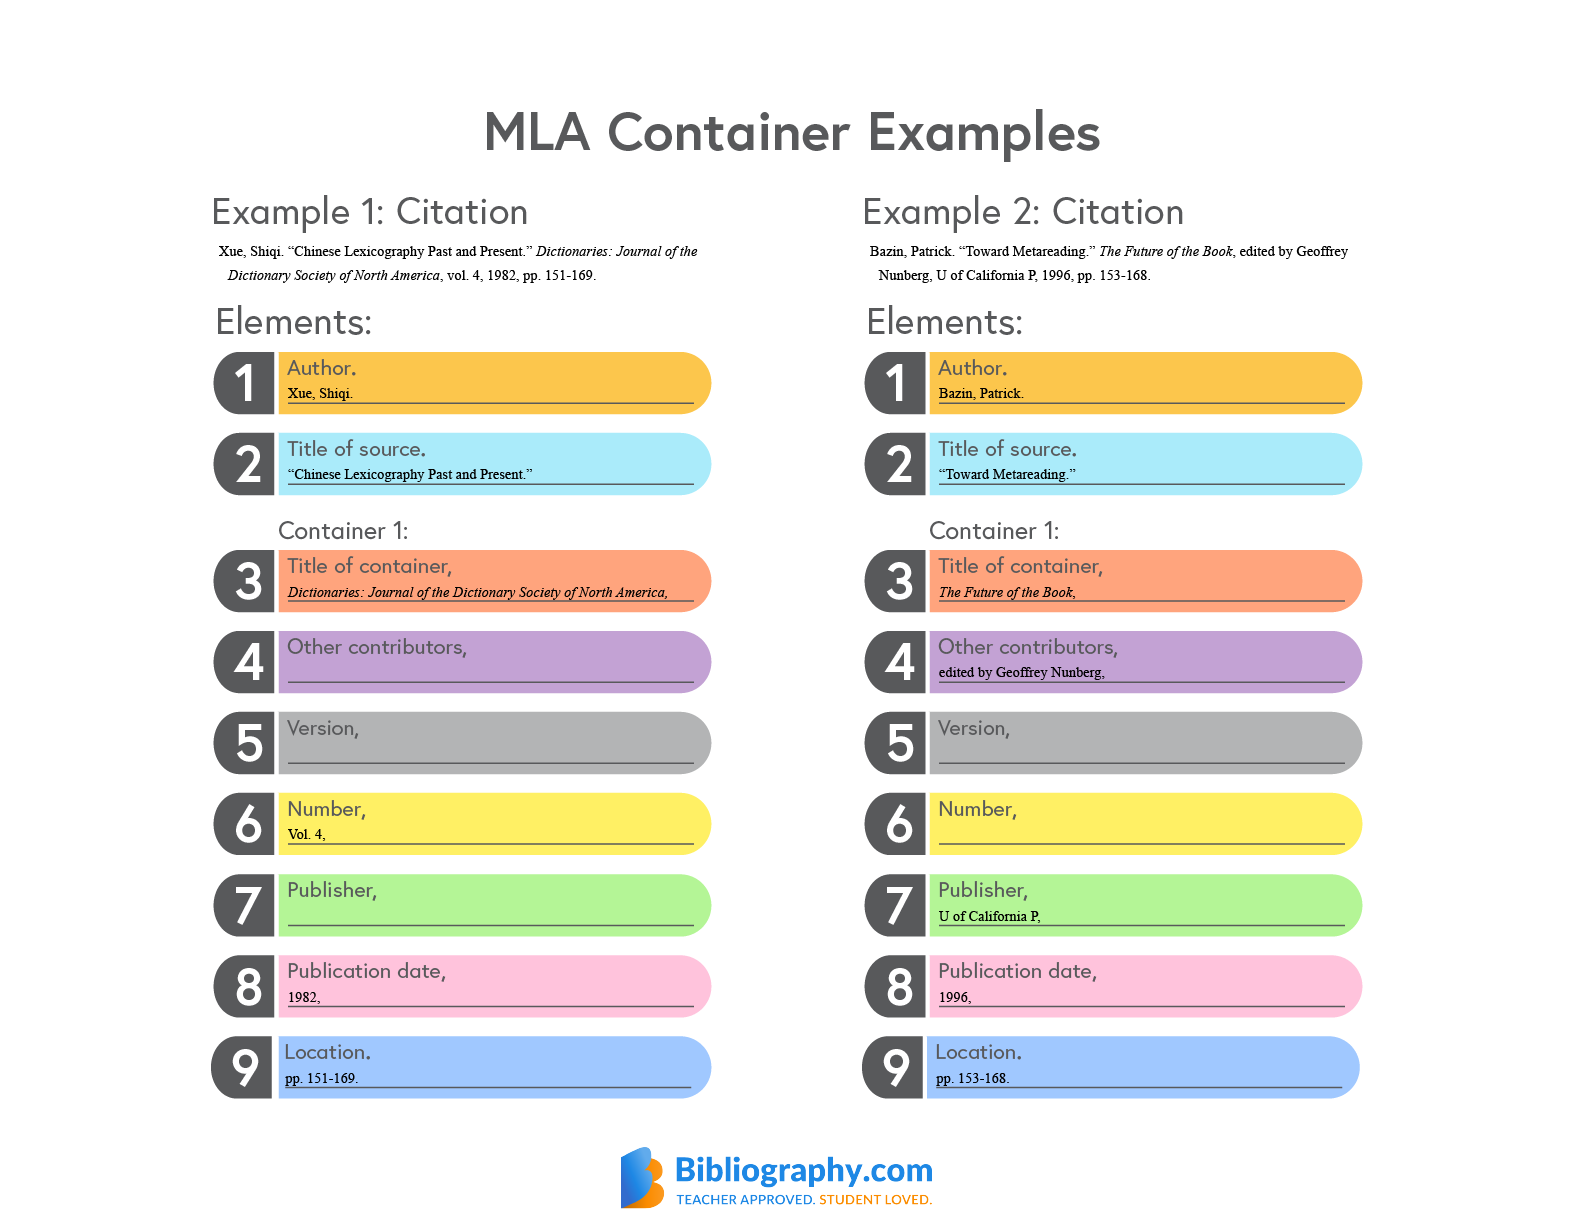 MLA container system